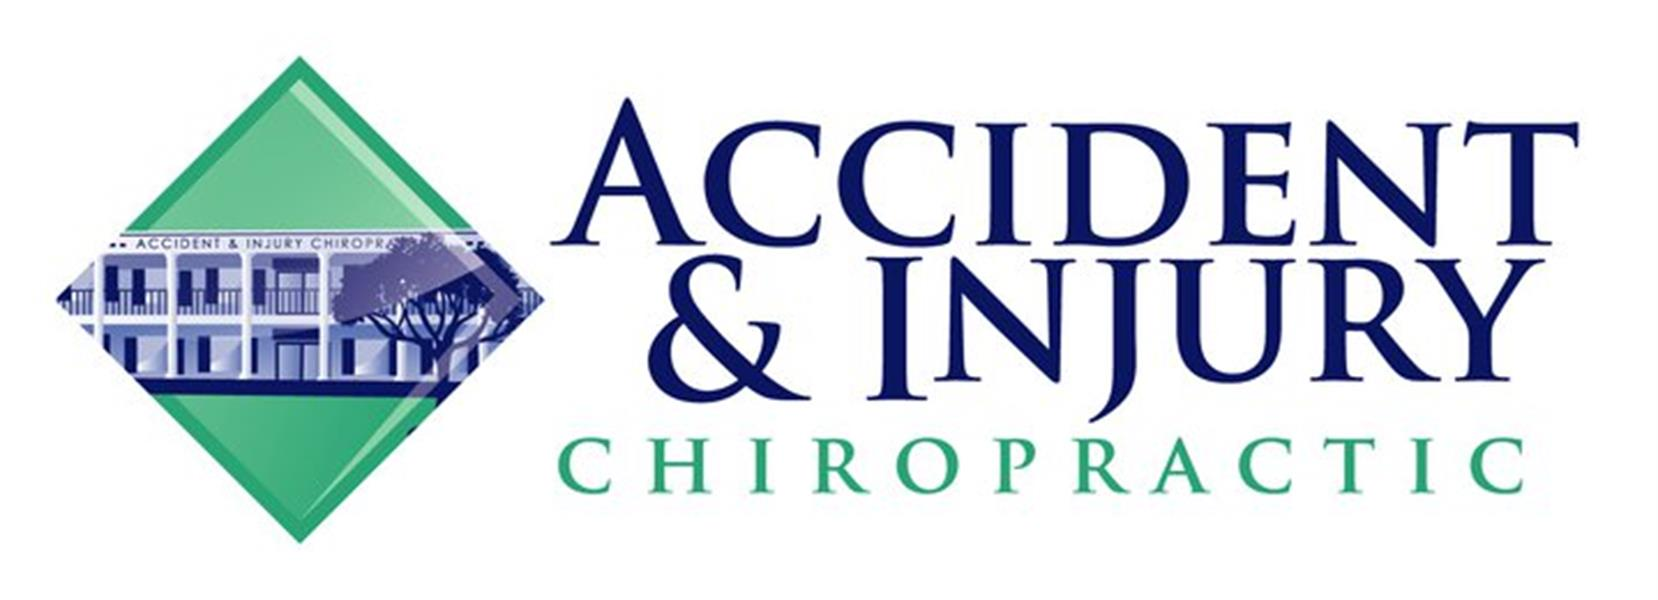 Accident & Injury Chiropractic Center, Inc.